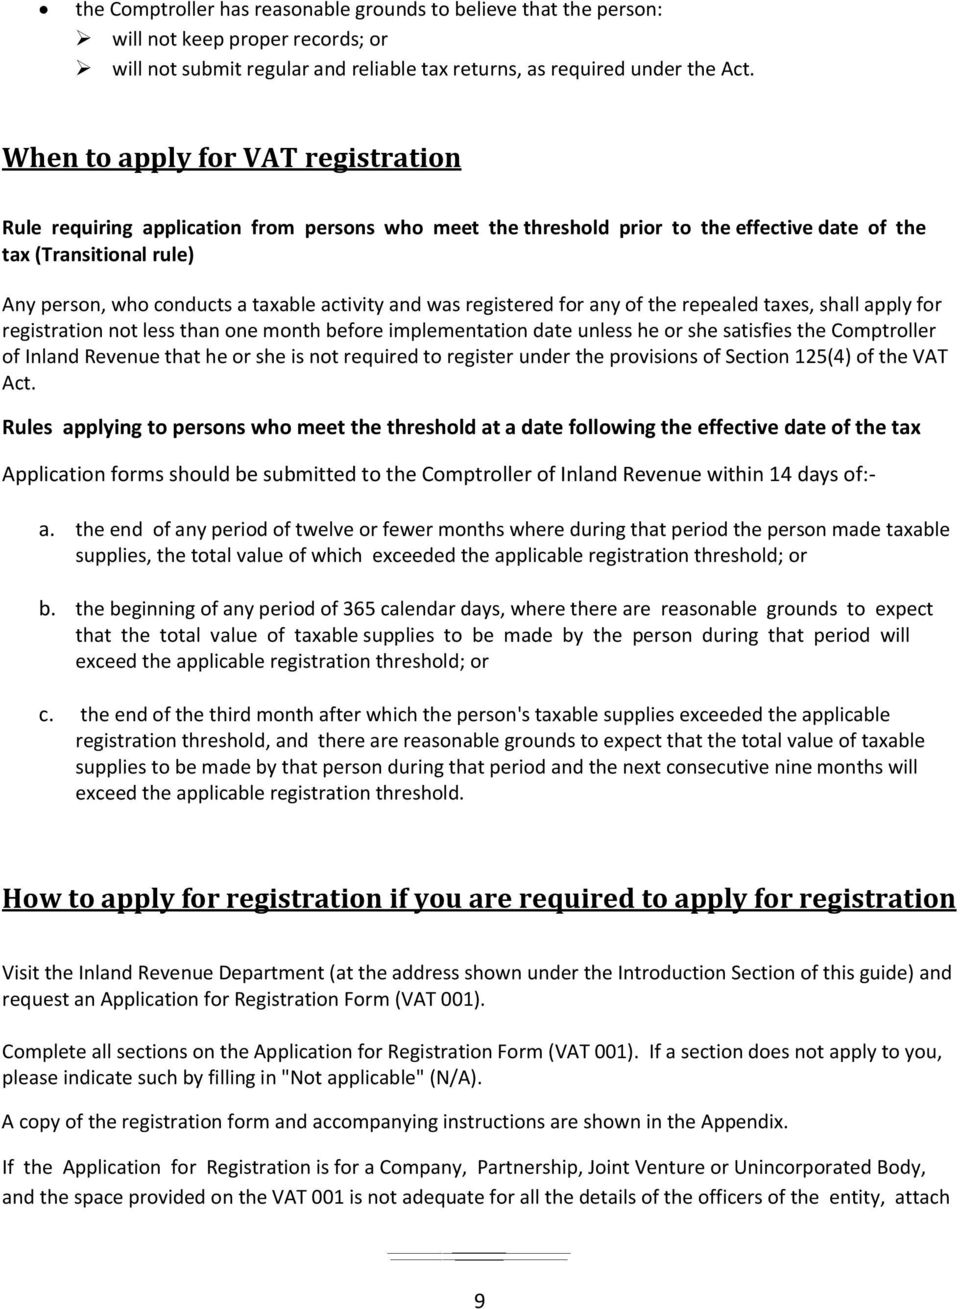 activity and was registered for any of the repealed taxes, shall apply for registration not less than one month before implementation date unless he or she satisfies the Comptroller of Inland Revenue